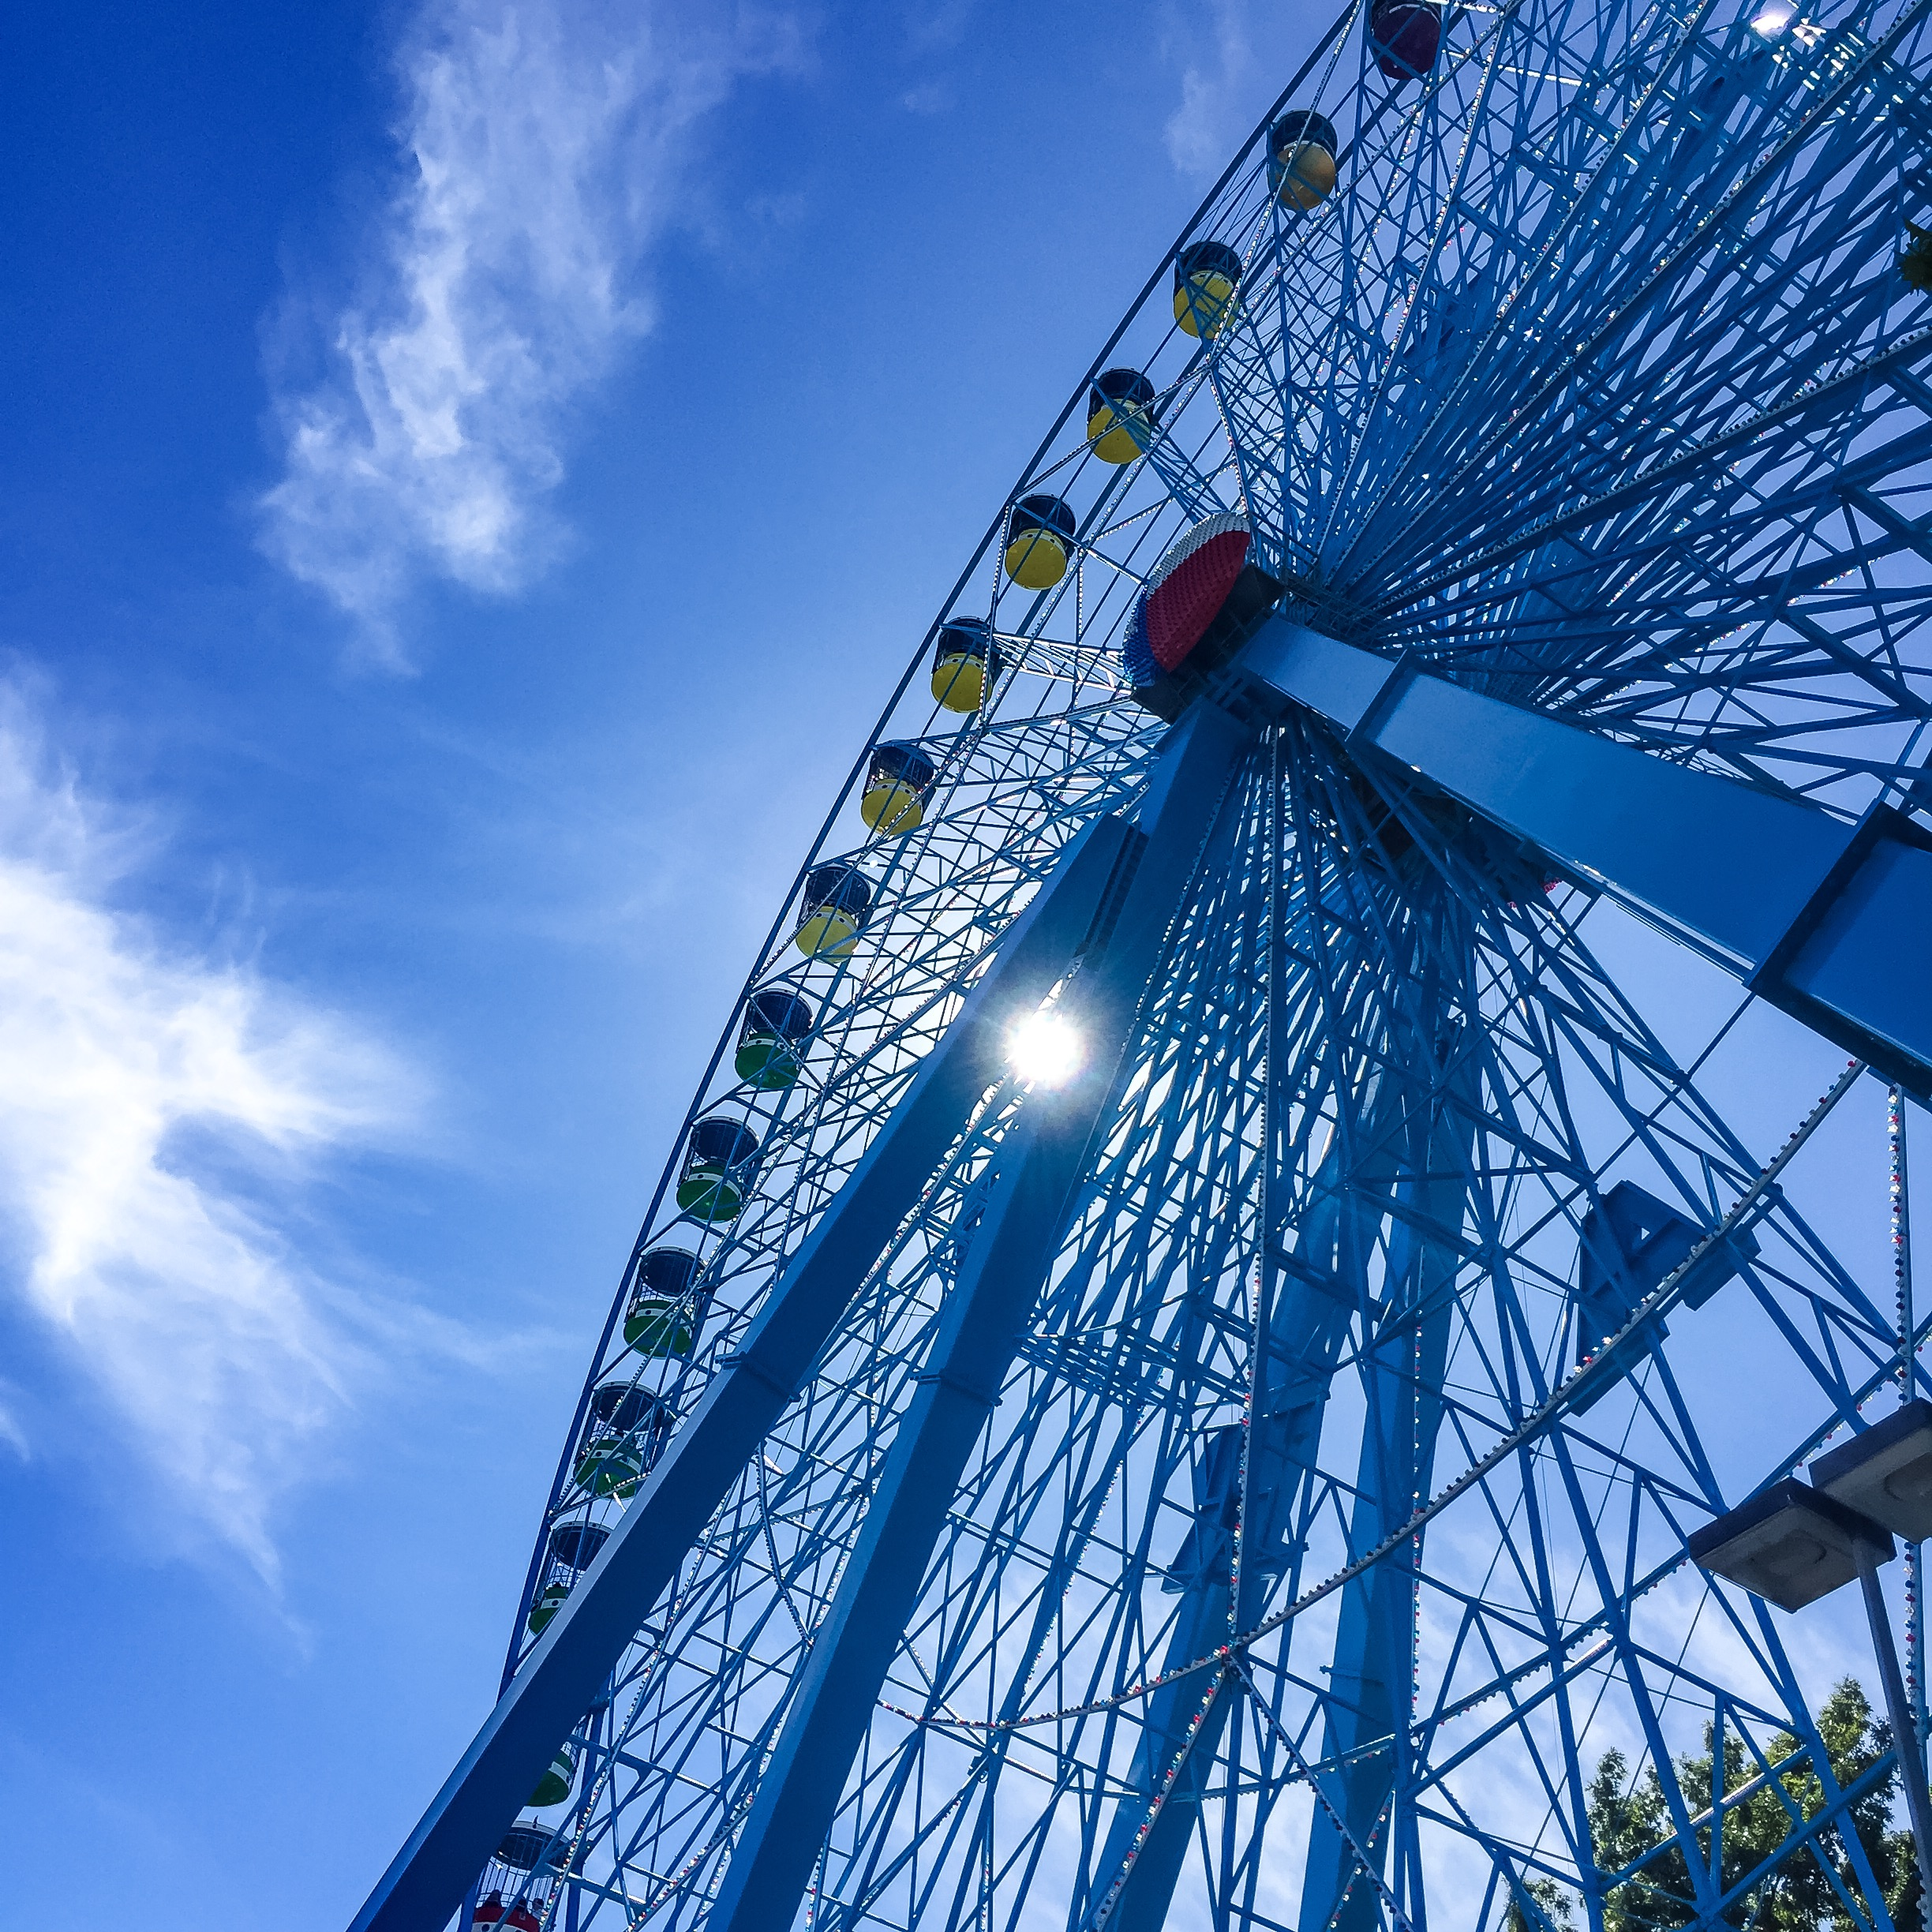 You spin me right round | Texas State Fair